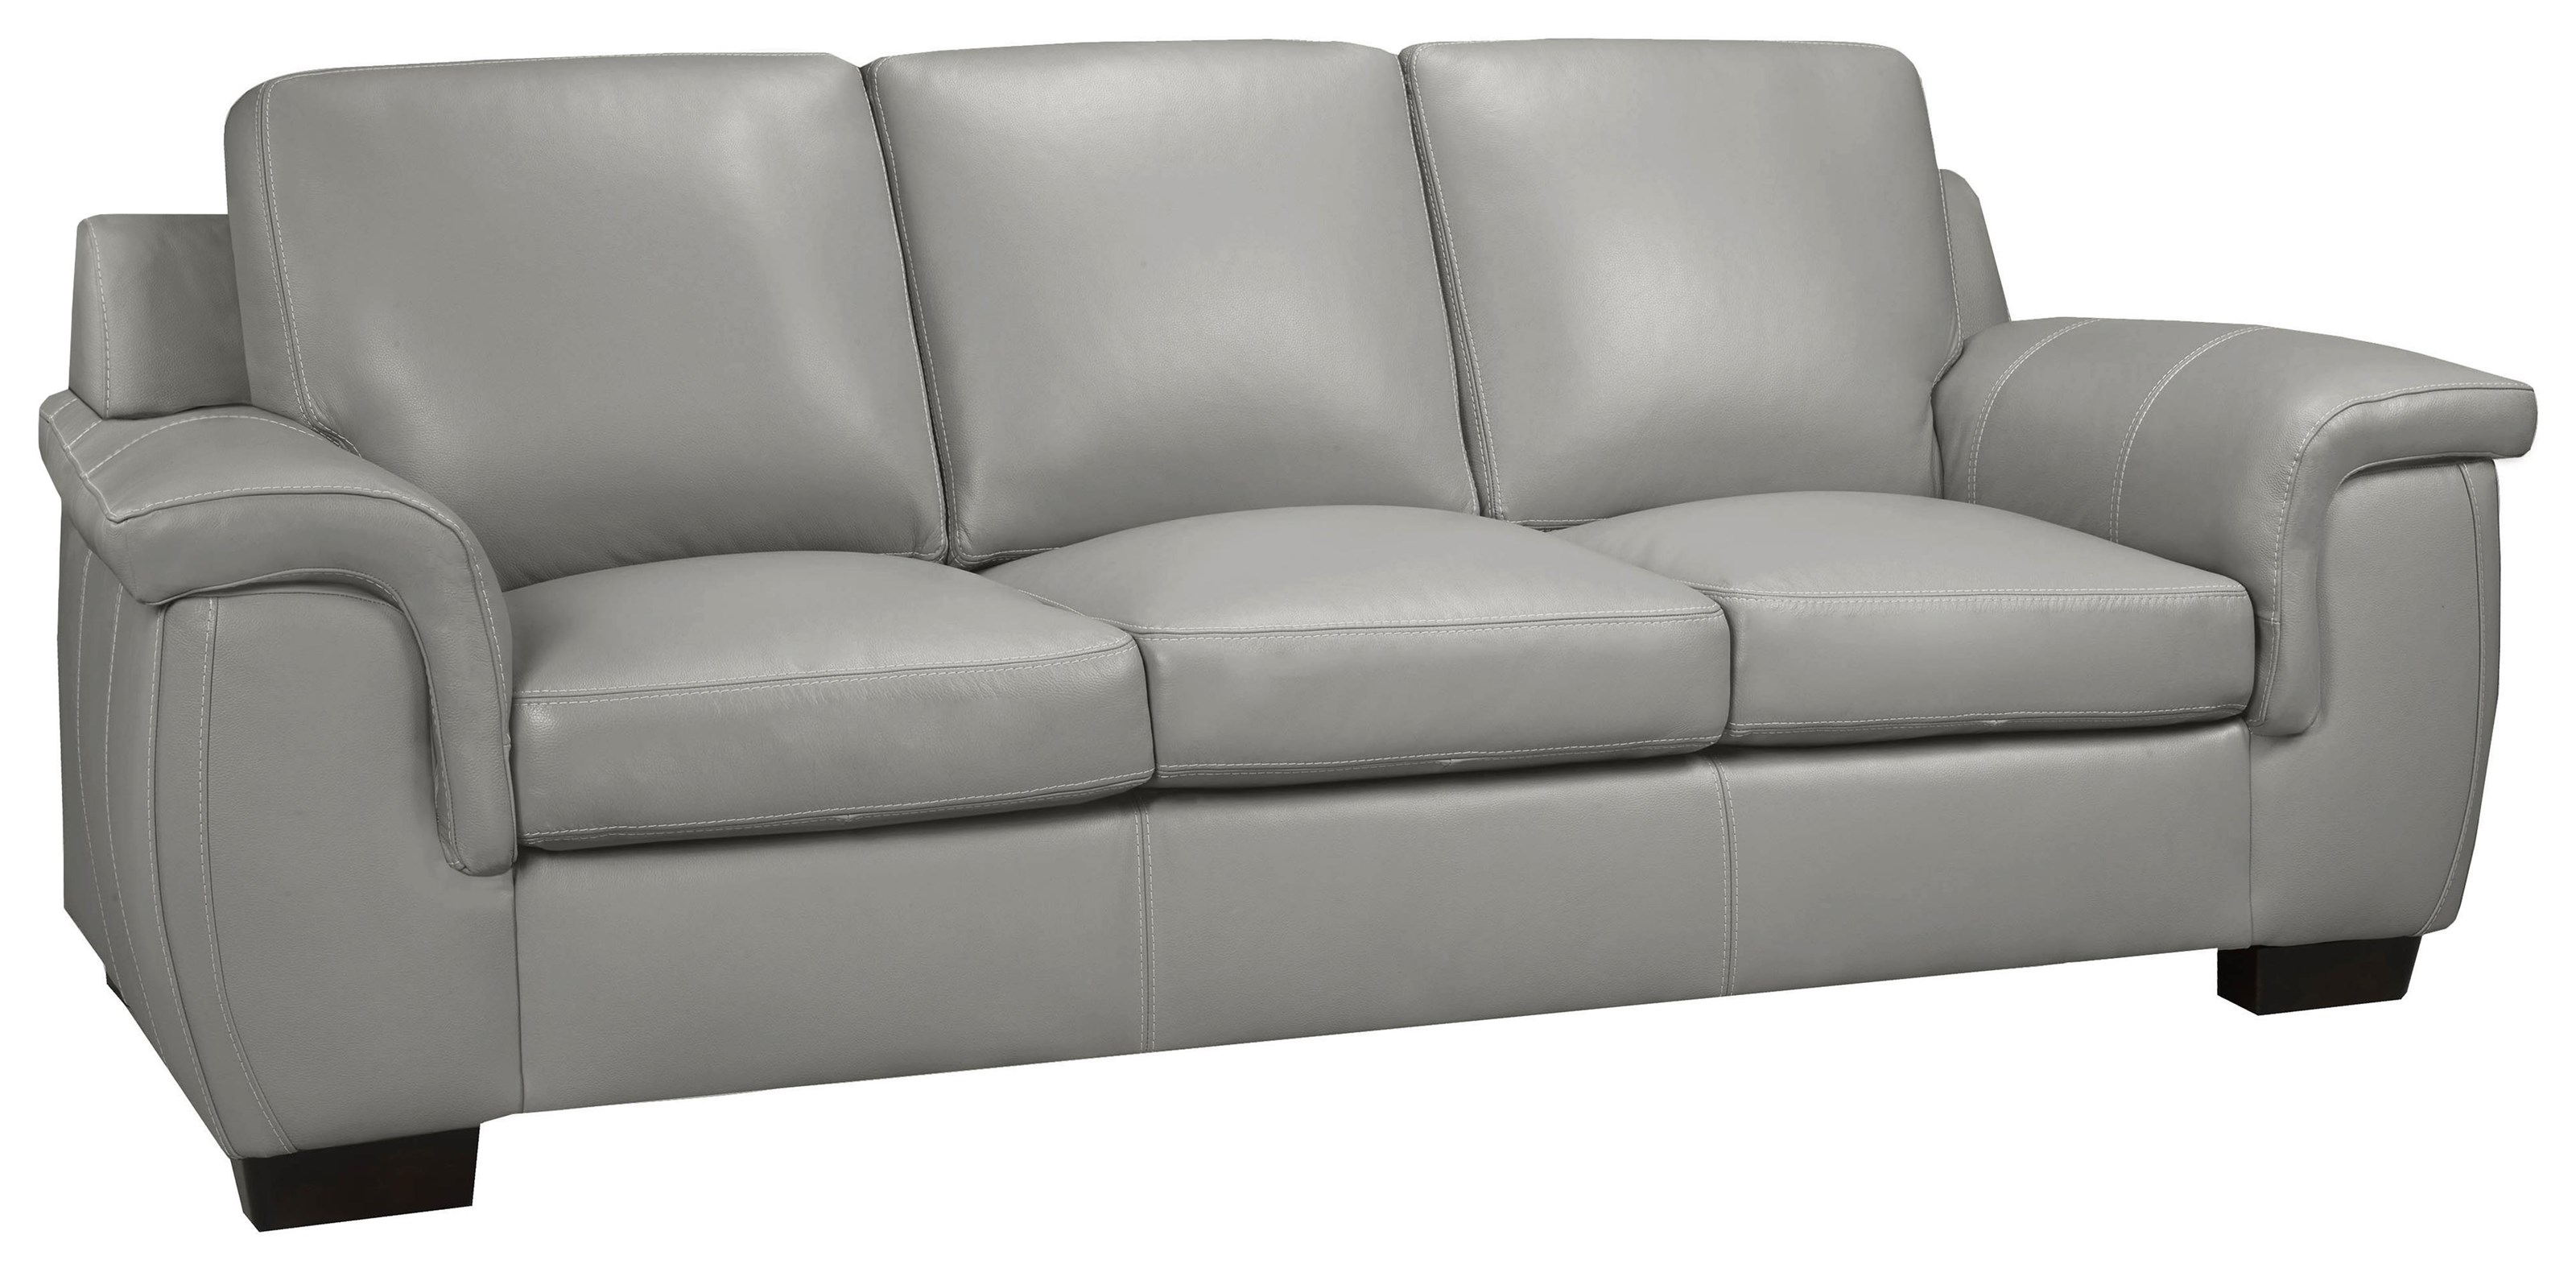 Brisbane Brisbane Lthr Sofa /cloud Gray by Leather Living at Stoney Creek Furniture